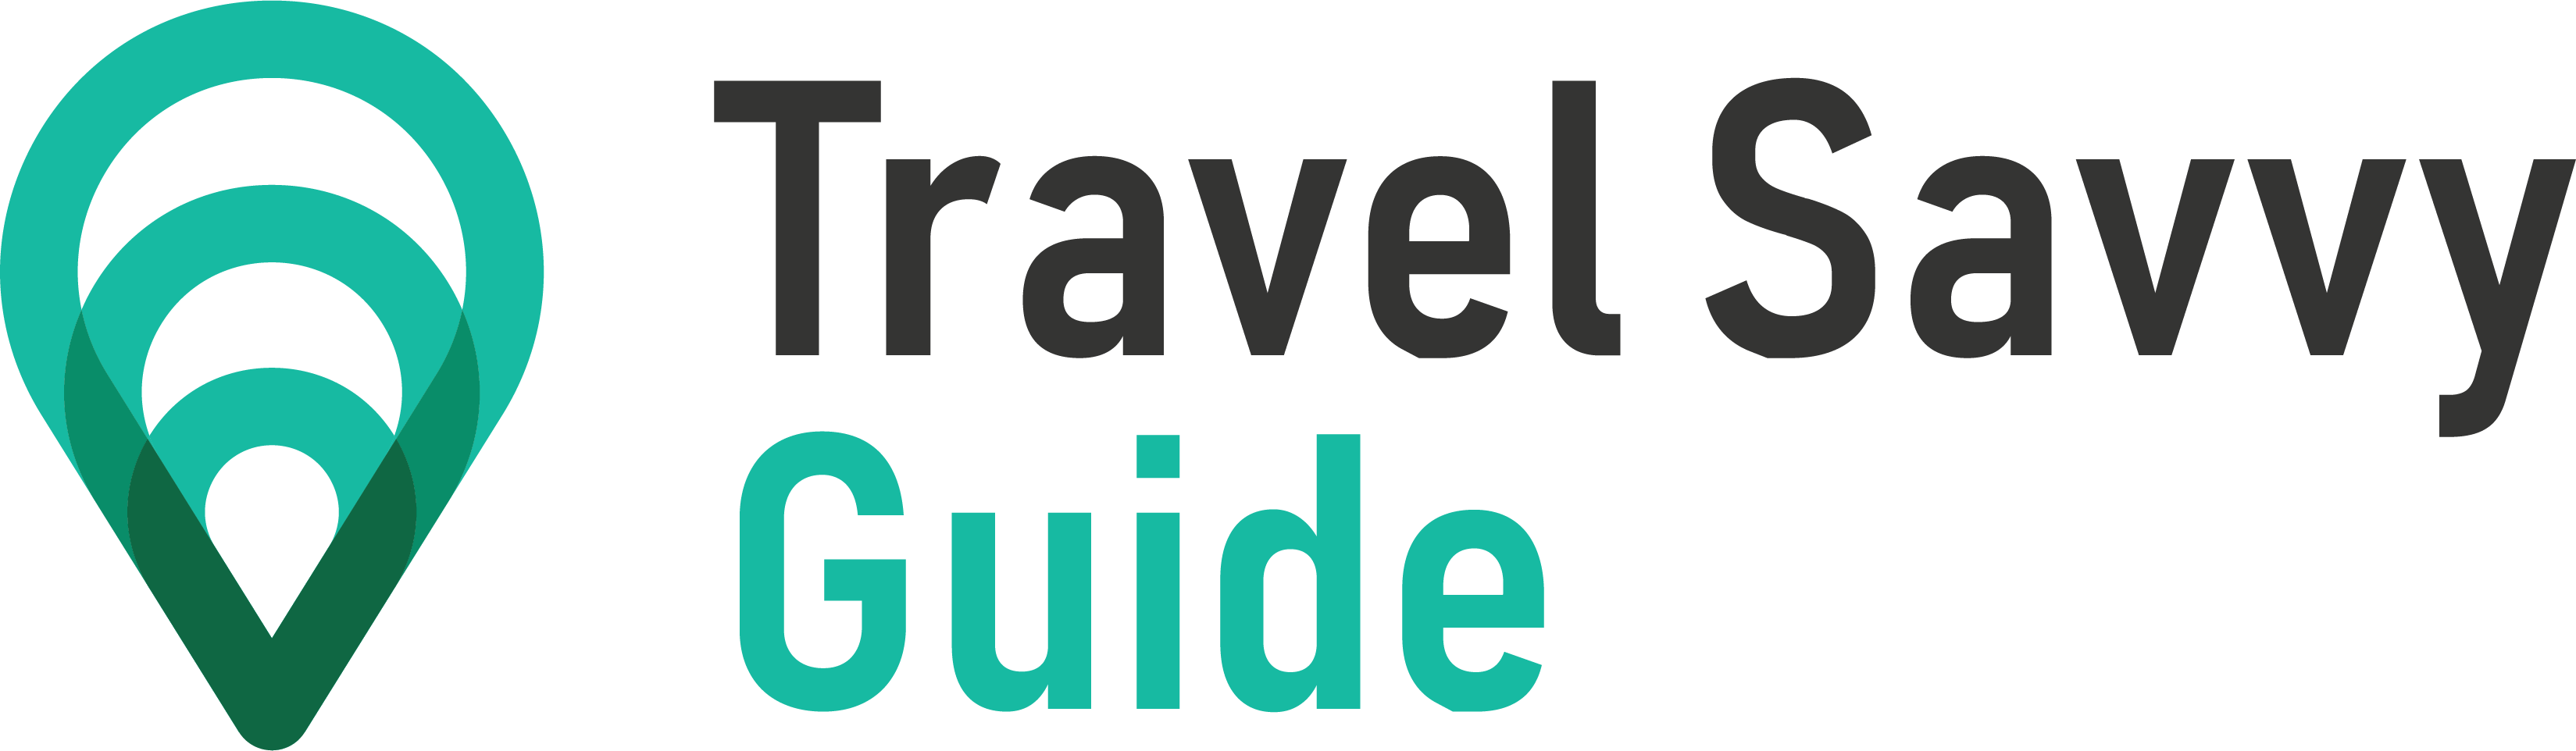 Travel Savvy Guide